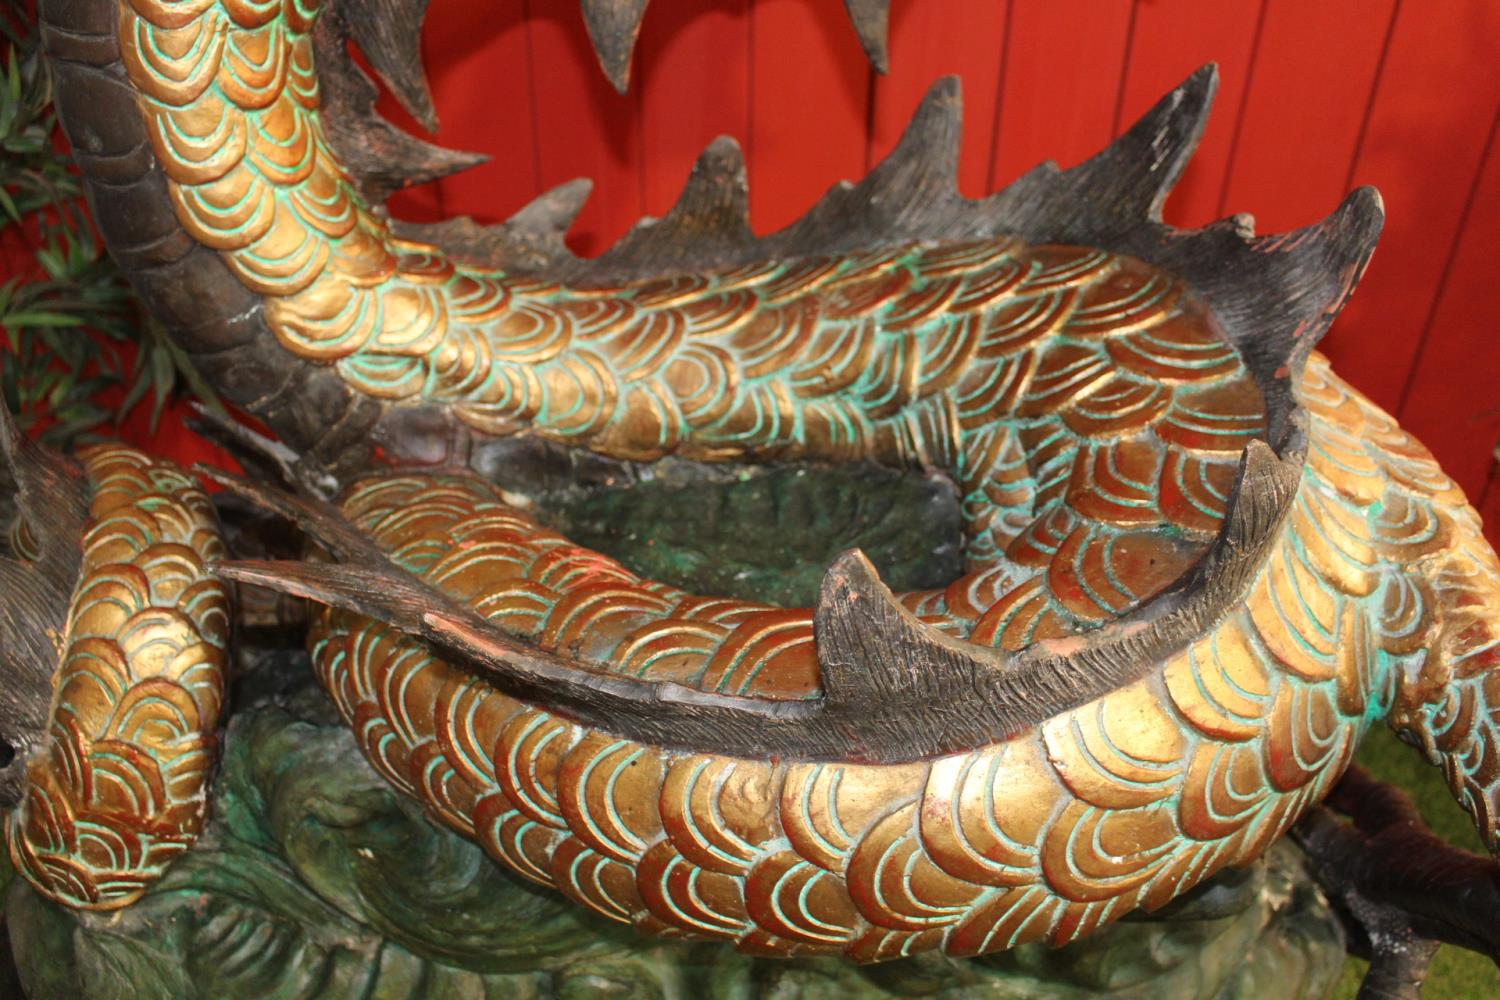 Model of a Dragon - Image 6 of 8